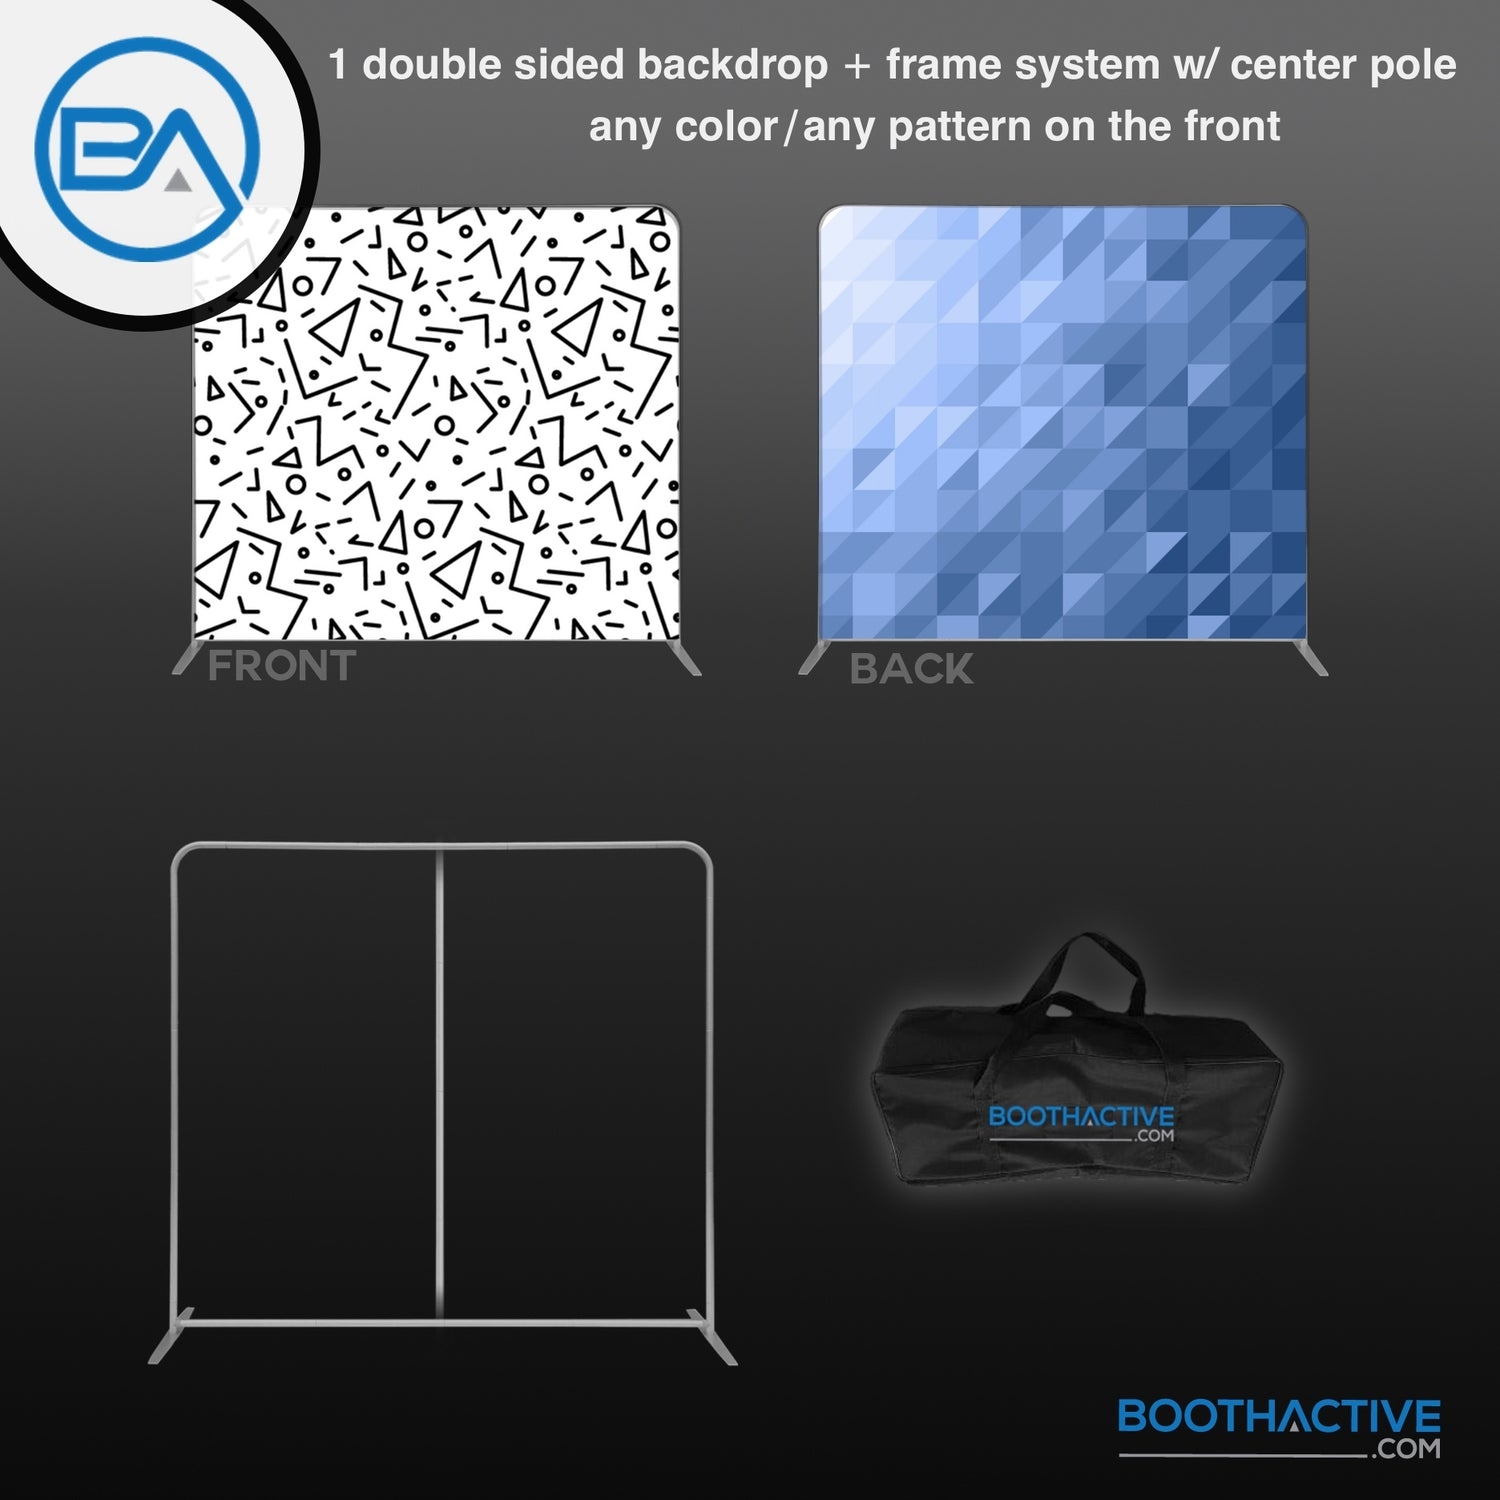 1x DOUBLE SIDED Backdrop + Frame BUNDLE - 8' x 8' - BoothActive